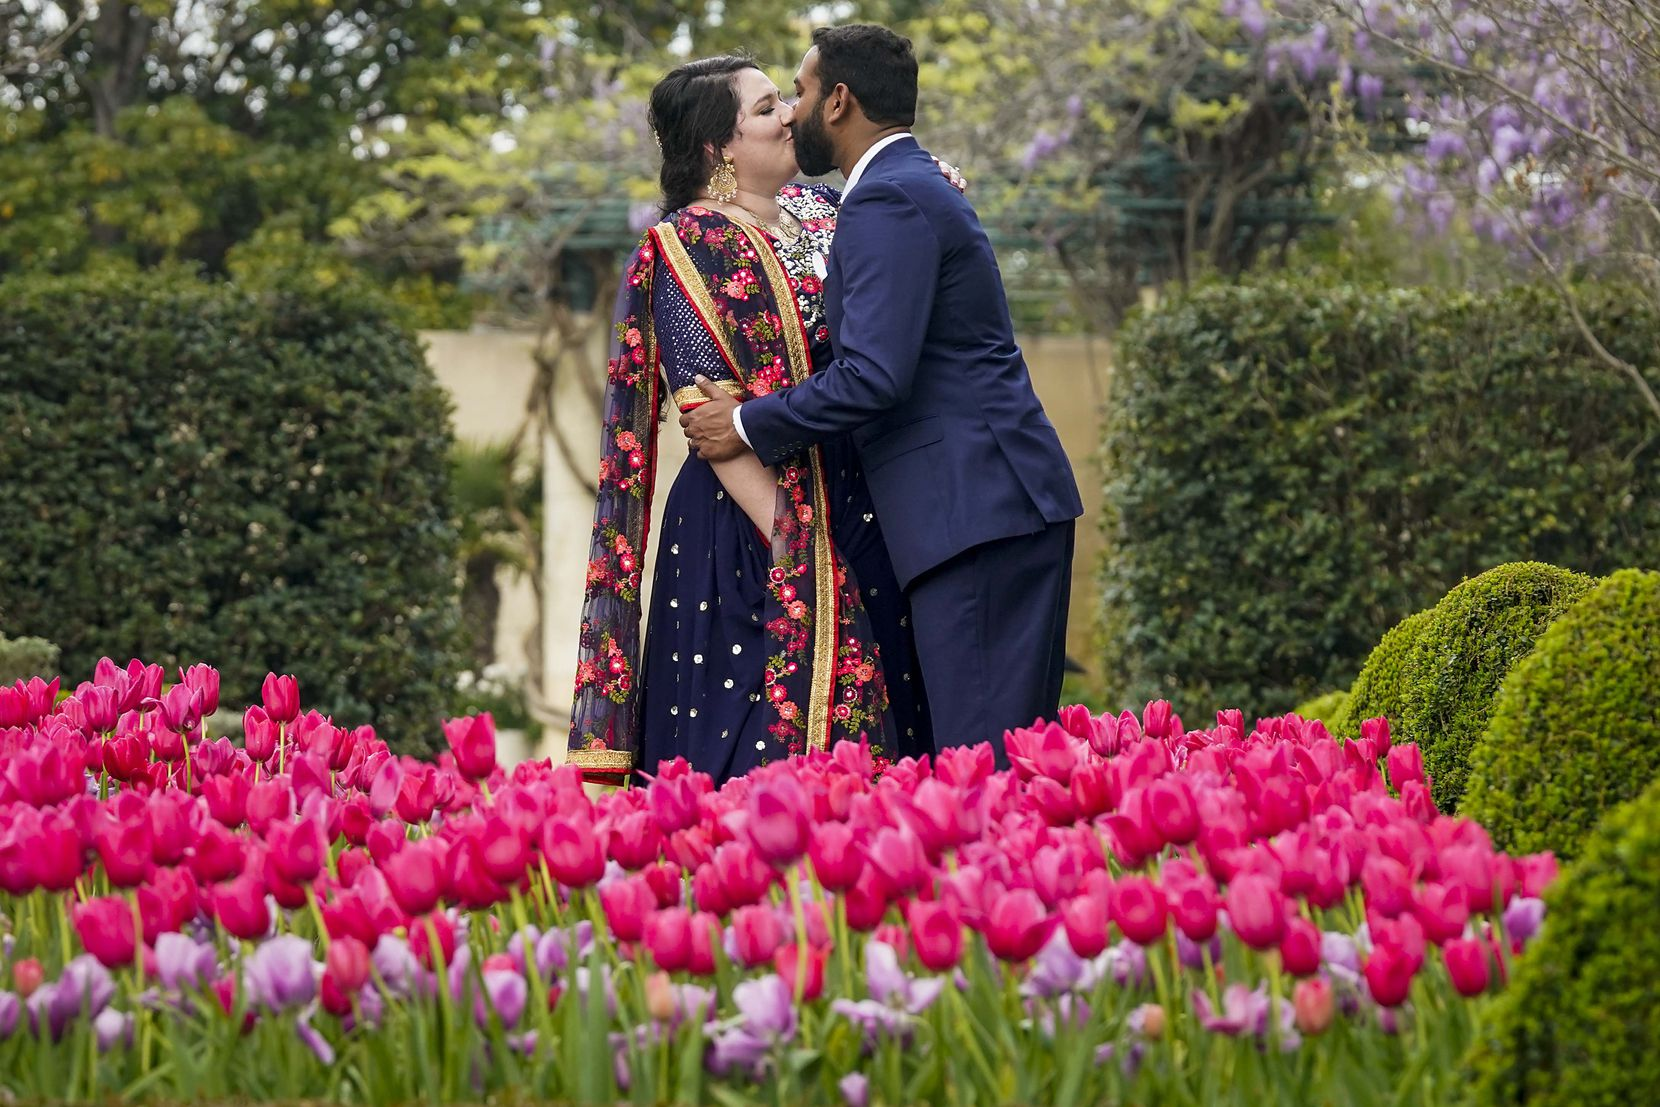 """Laura Remson and Abhishek Ravi kissed while posing for wedding photos after getting married March 19 at the nearly empty Dallas Arboretum. The couple planned a five-day, 250-person traditional wedding in India, but the pandemic changed that. """"We hope to do that eventually,"""" she said."""